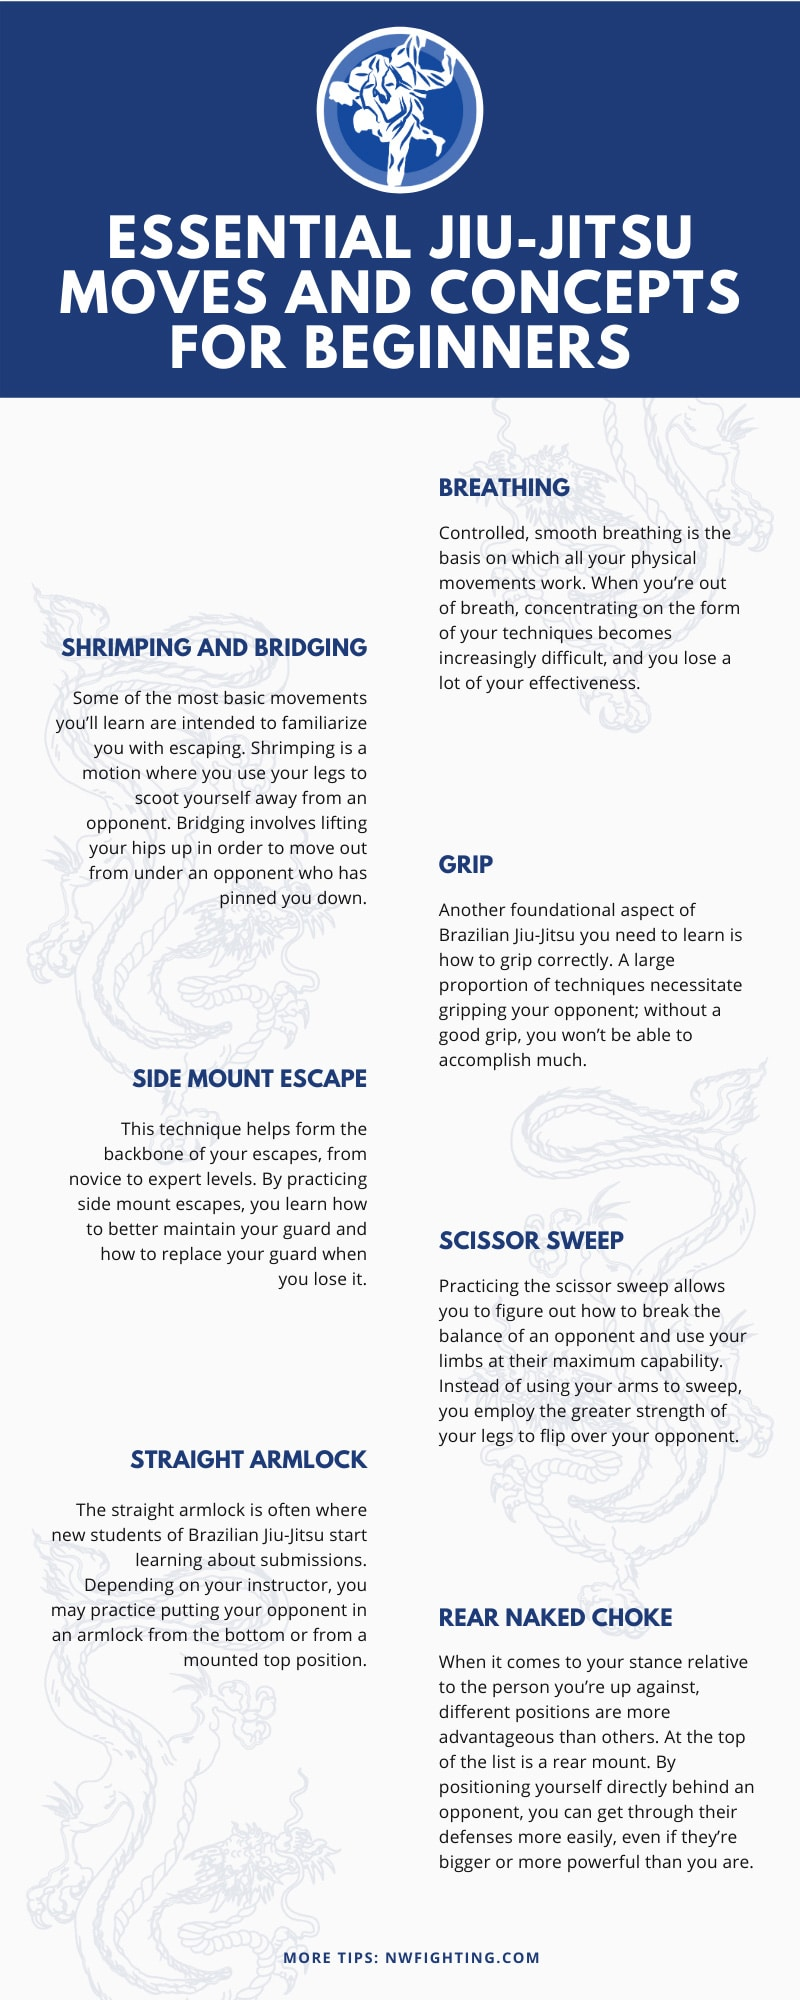 Essential Jiu-Jitsu Moves and Concepts for Beginners infographic